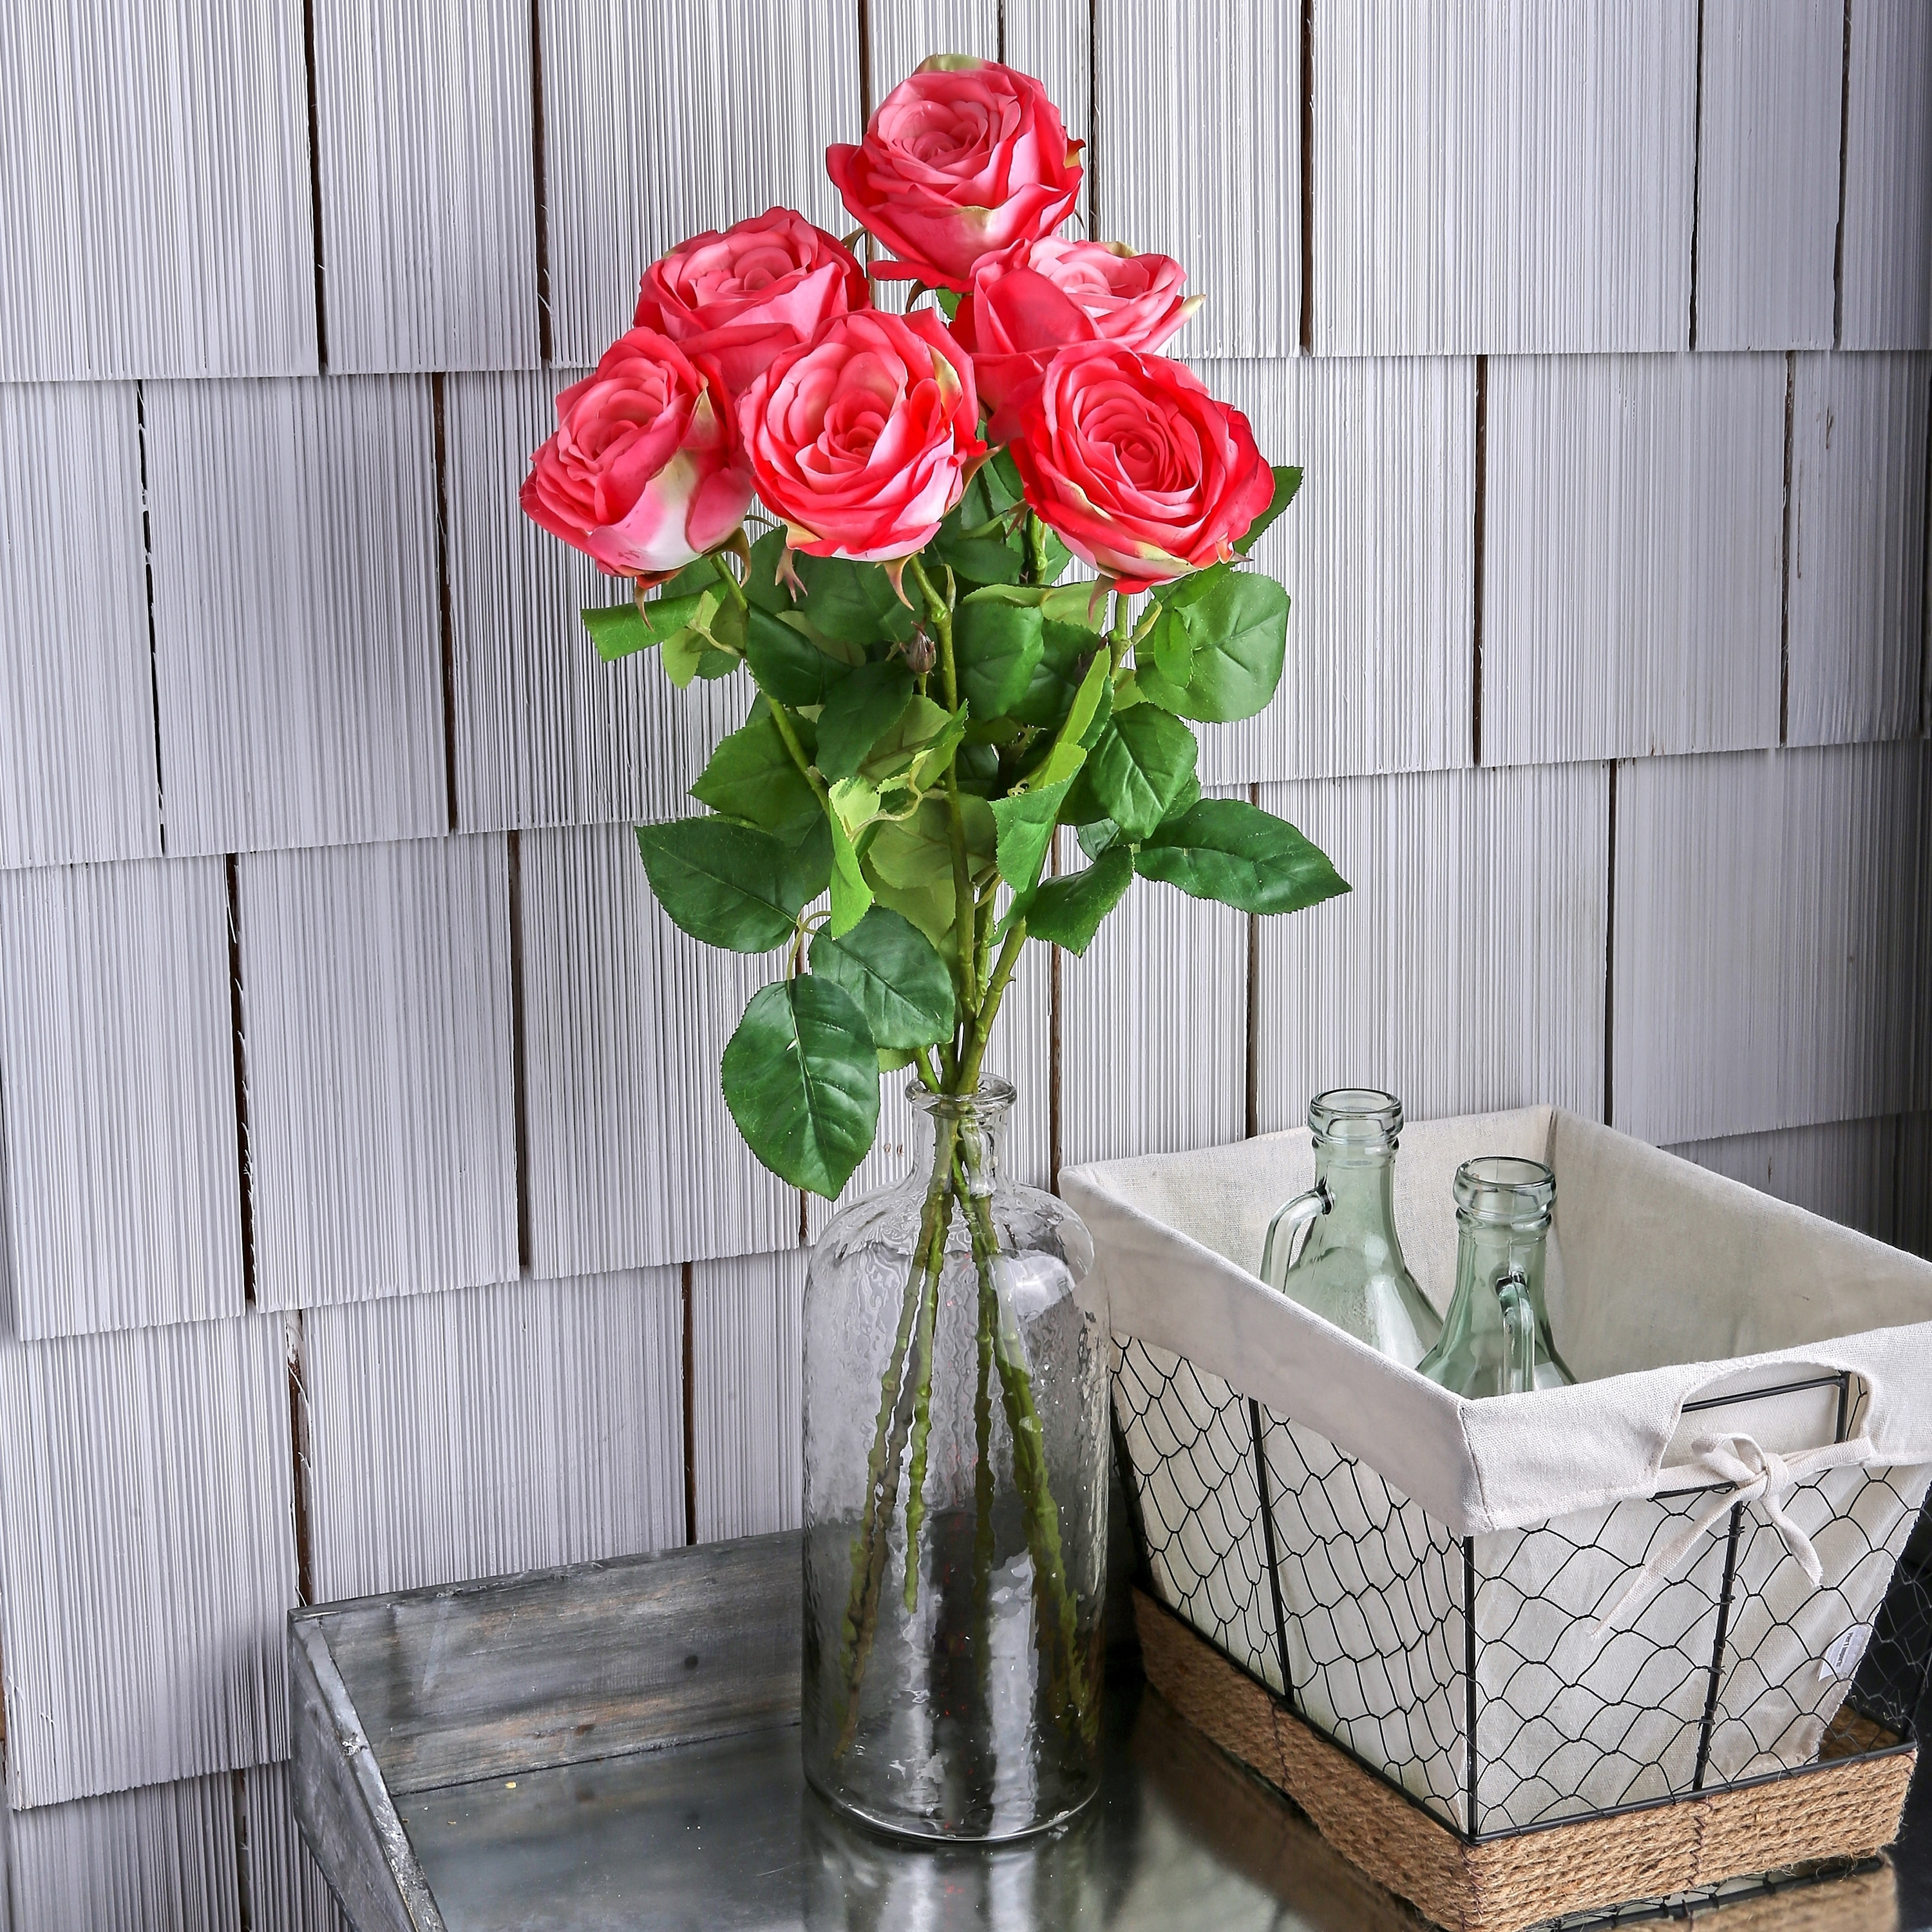 Natural Touch French Roses 26 Long (Set of 6) - Rose Pink